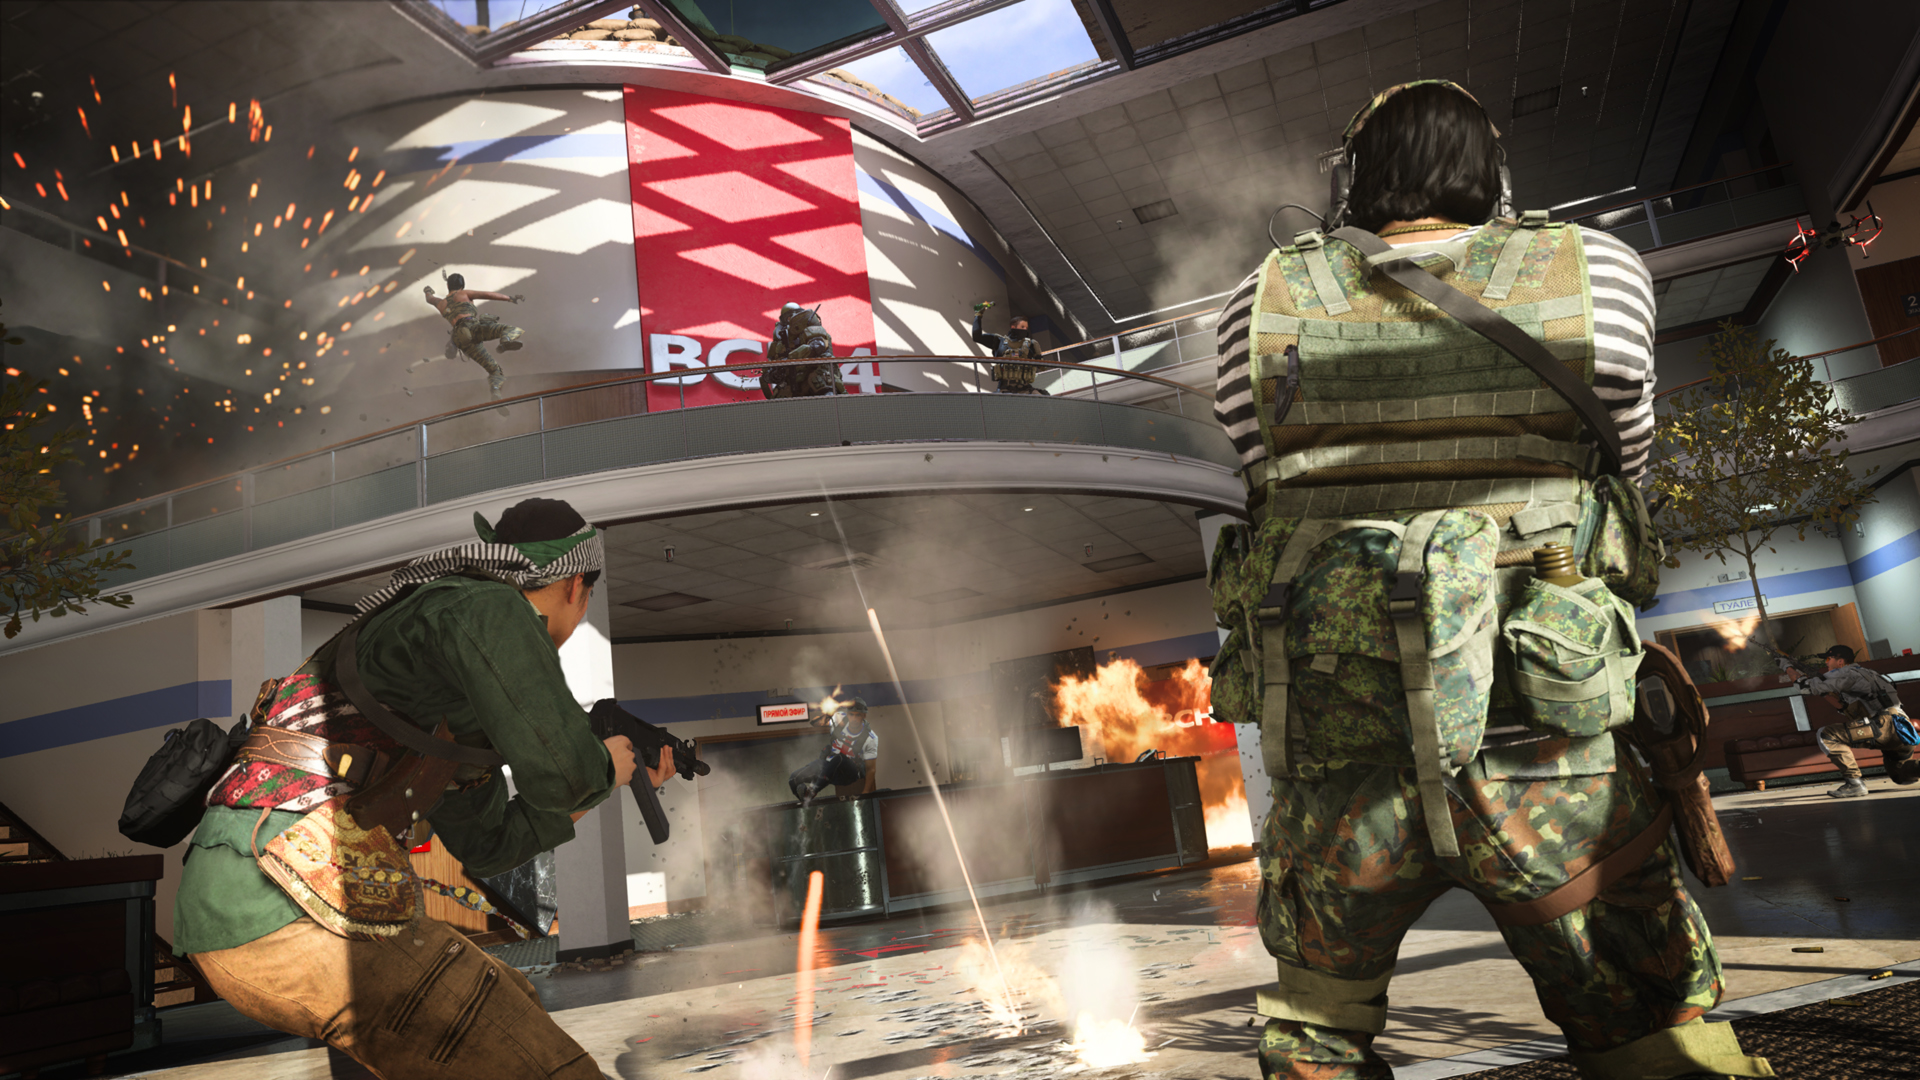 Call of Duty: Warzone players advance on an enemy in a balcony